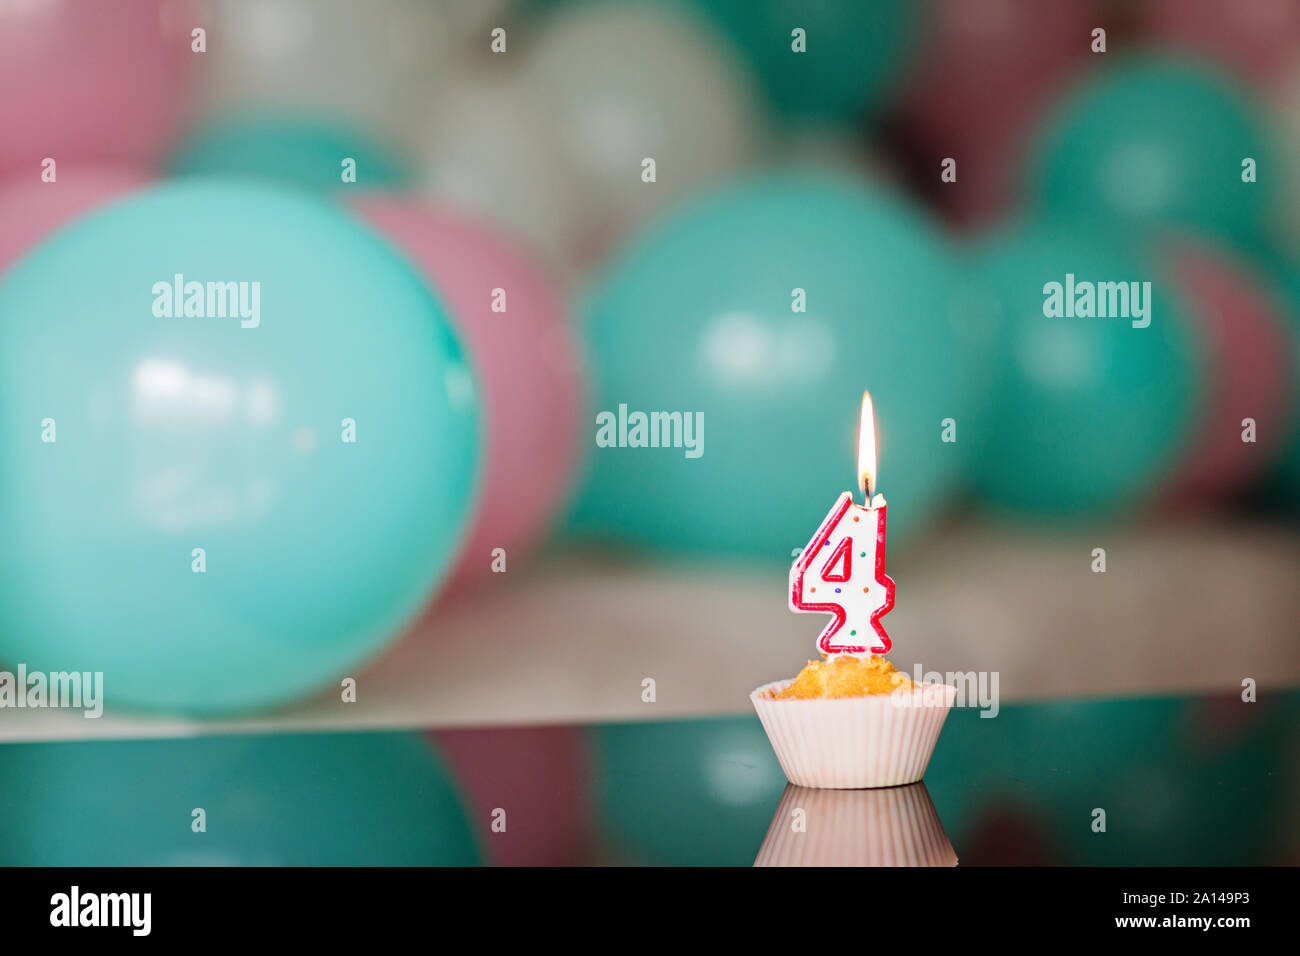 Awe Inspiring Birthday Cake And Colorful Balloons On Background Celebrate 4 Personalised Birthday Cards Veneteletsinfo